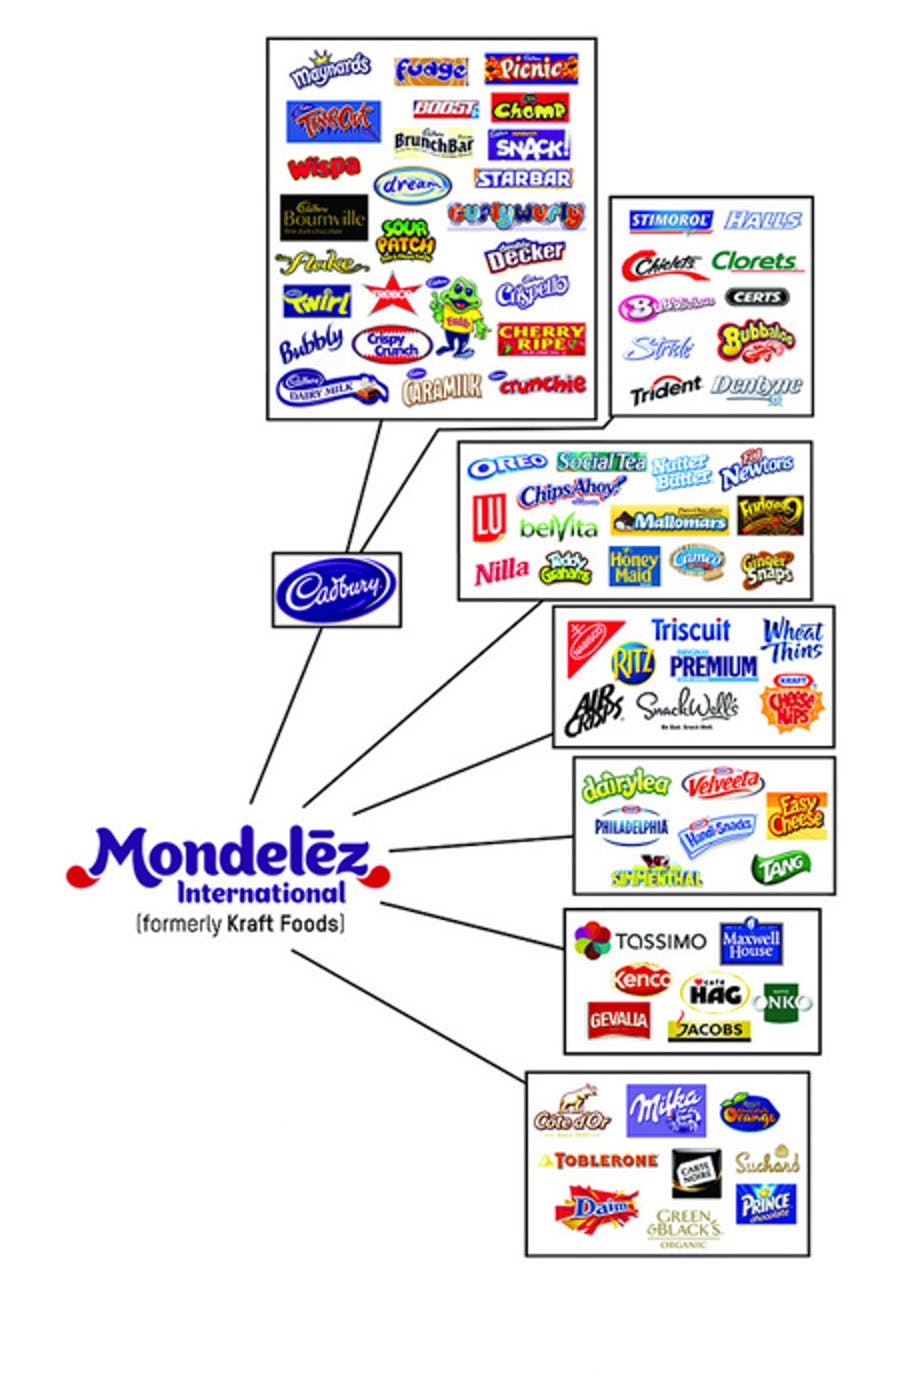 Mondelez International properties